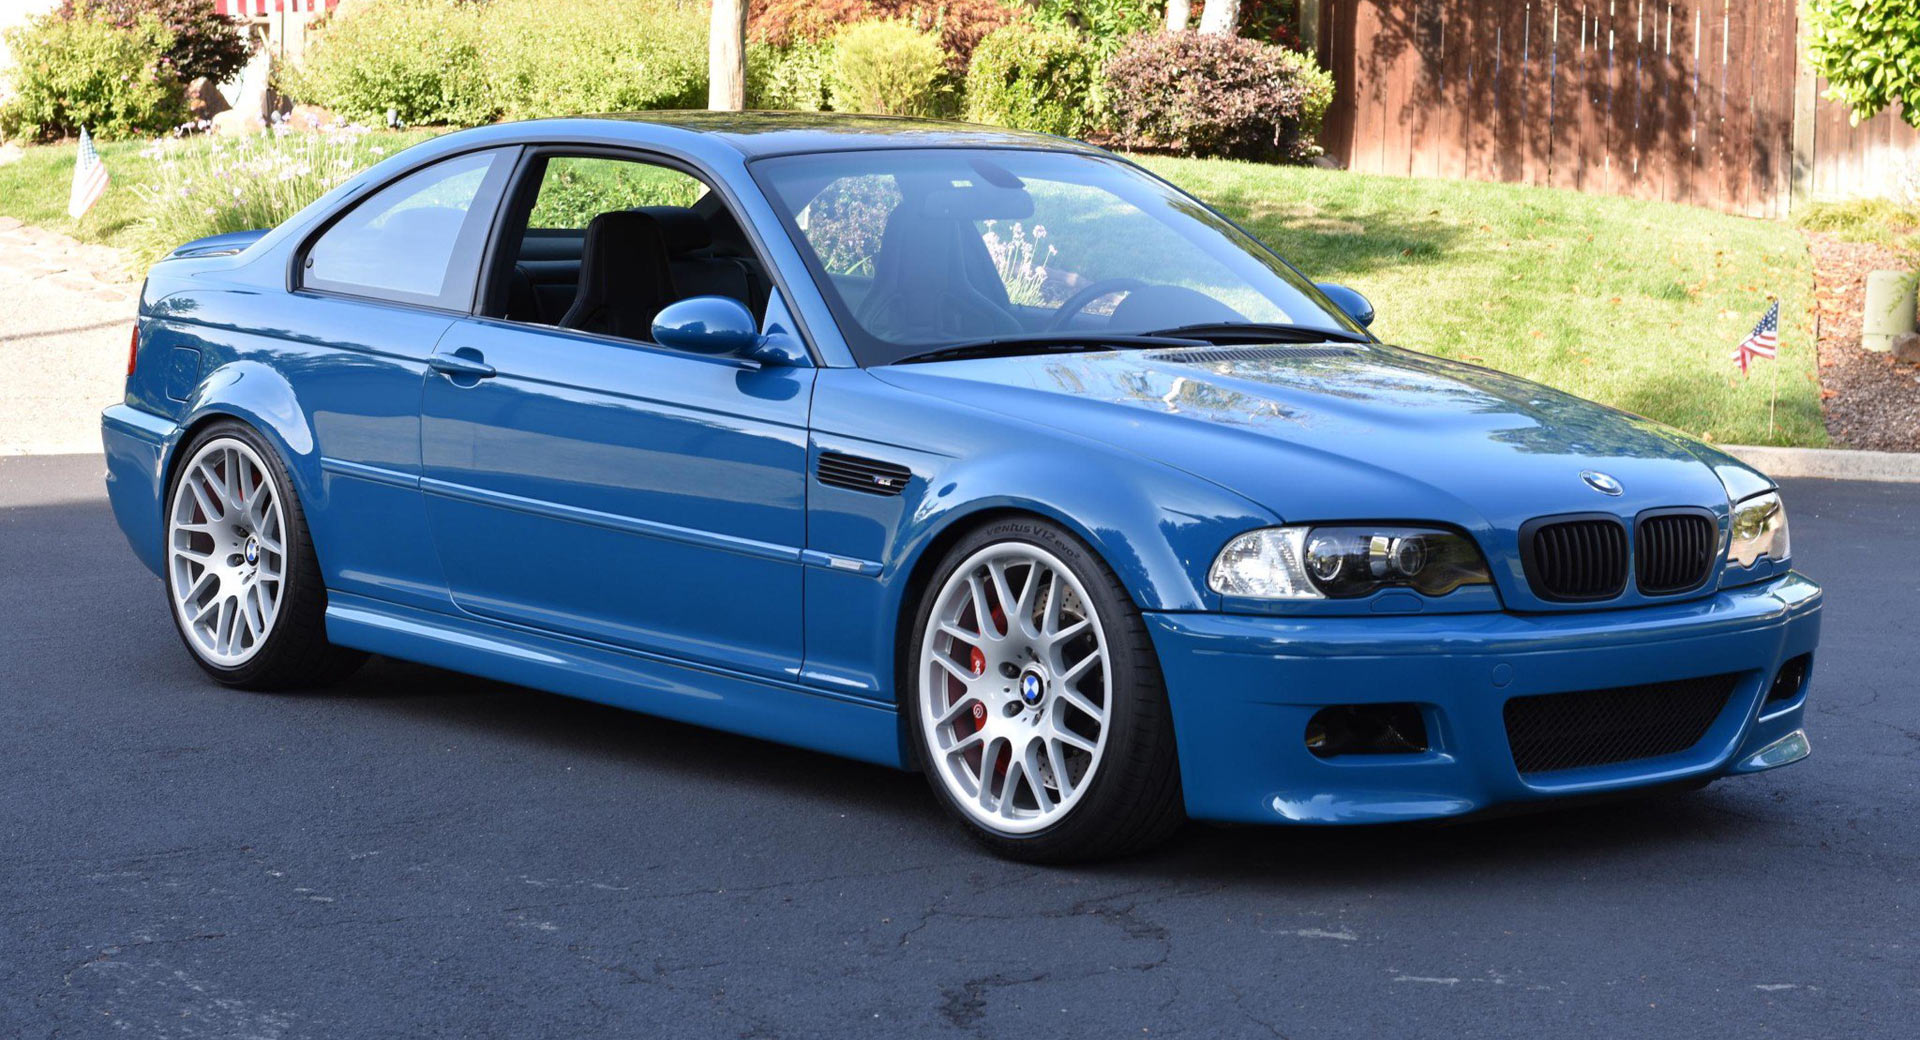 A BMW M3 E46 Just Sold For $90,000, Will This Become The ...